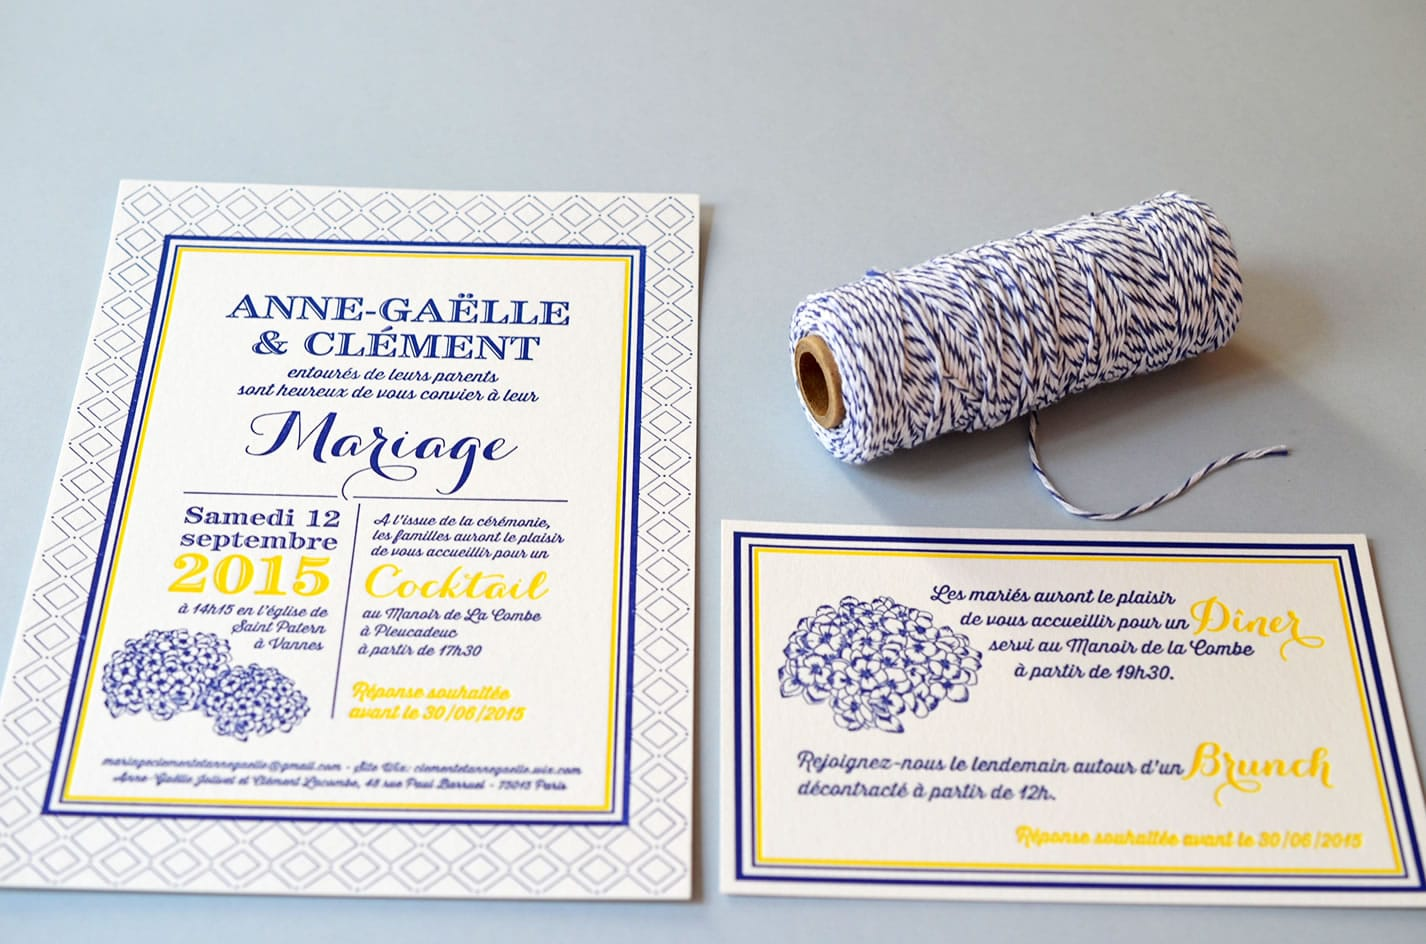 Faire part sur mesure bretagne letterpress horthensia latelierdelsa